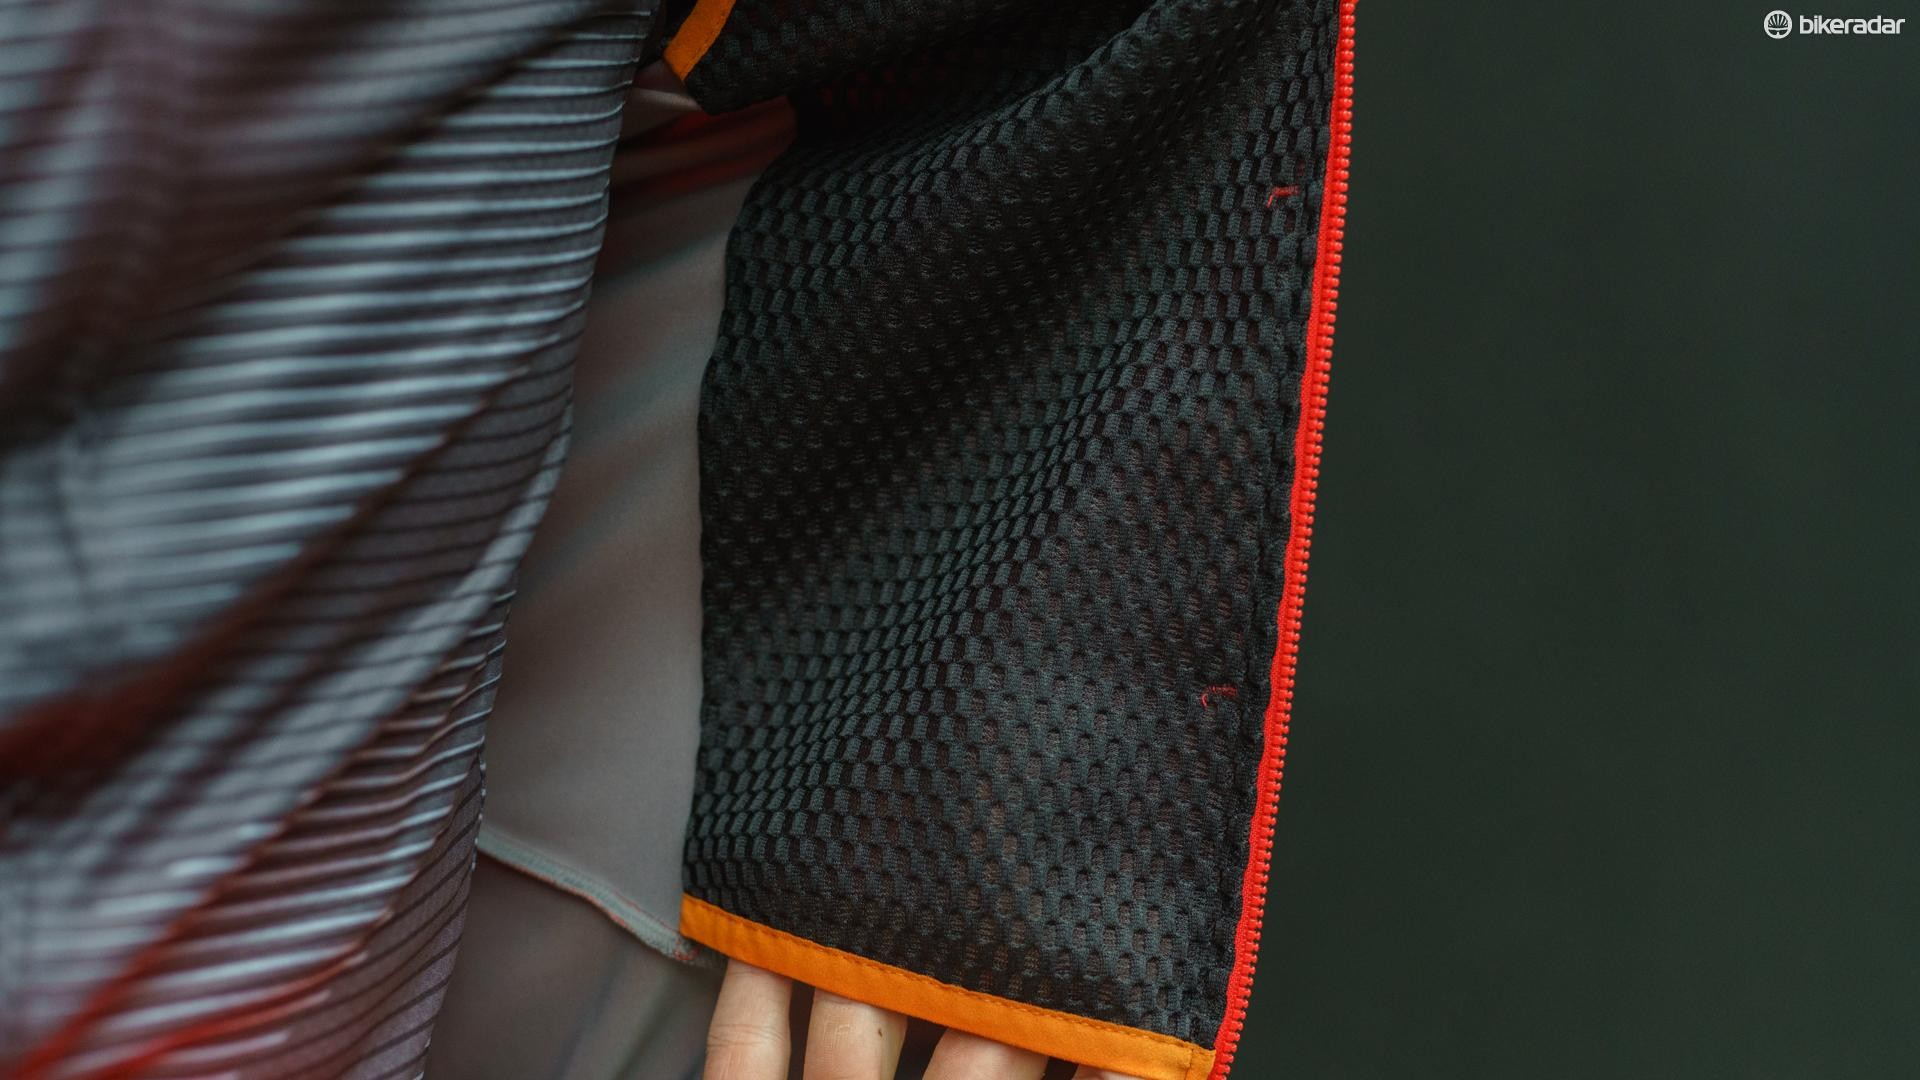 A 3D mesh fabric lines the inside of the jacket at the front, providing warmth on the most exposed area of the jacket